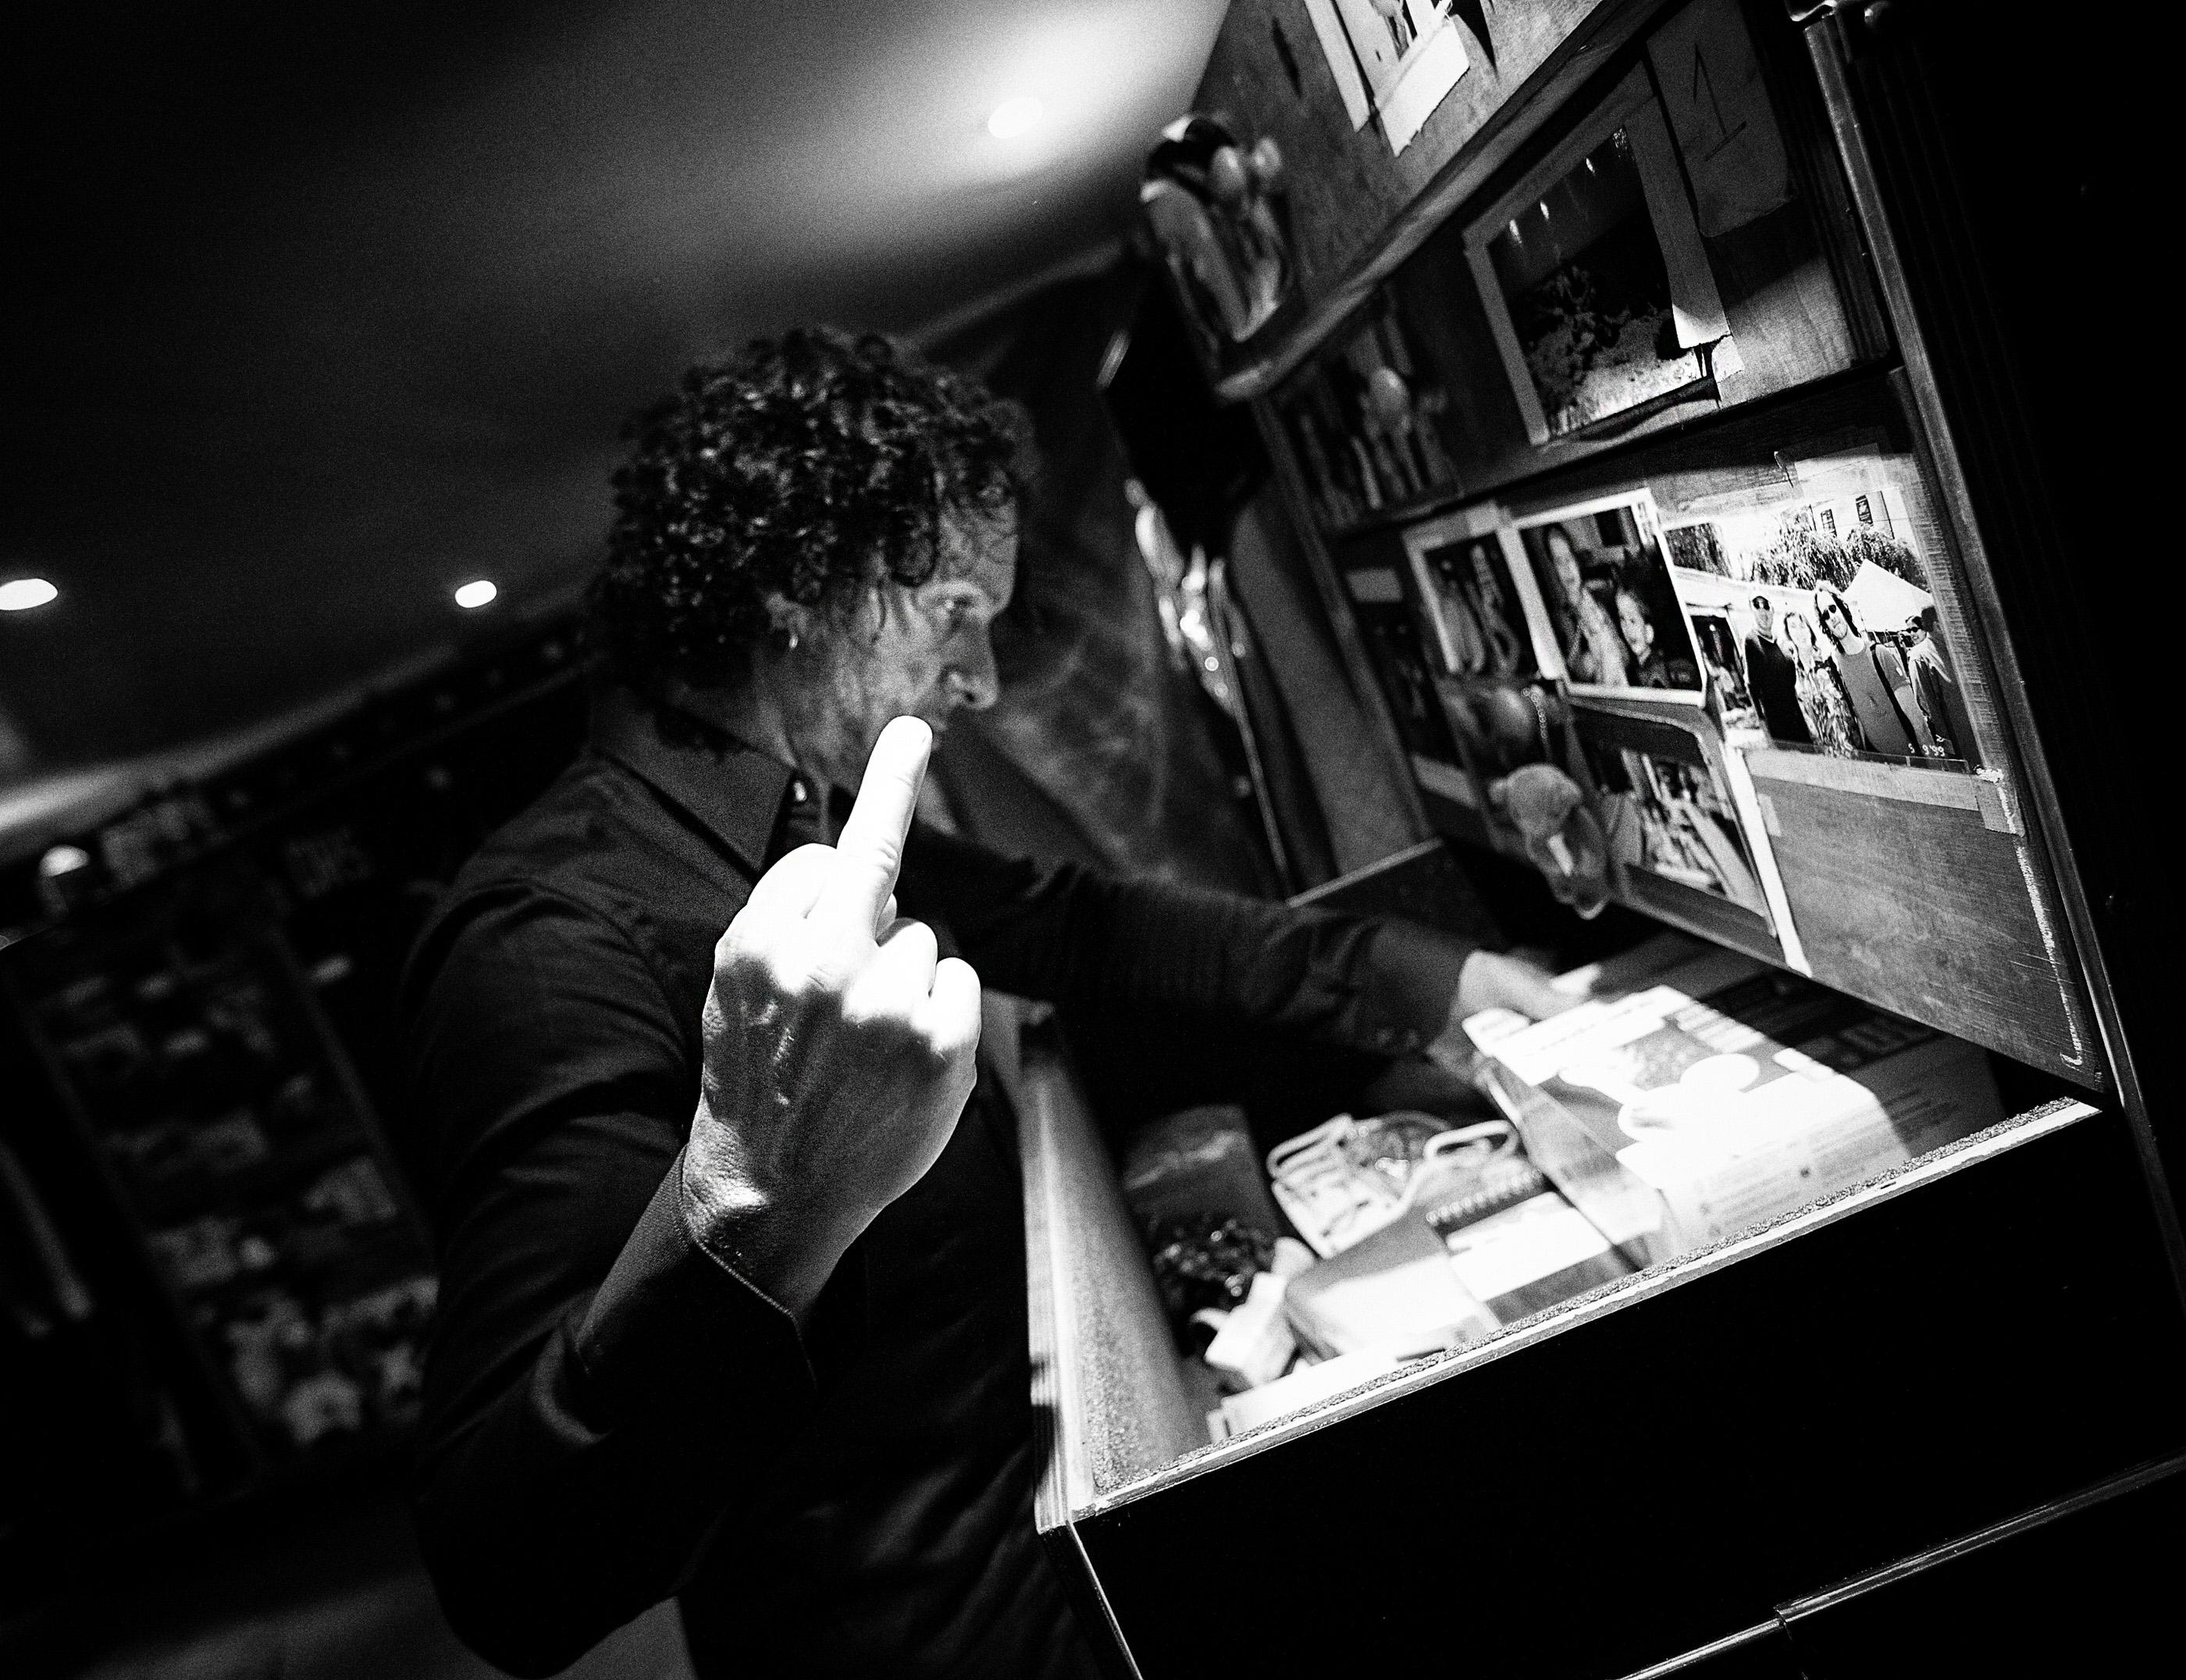 Vivian Campbell Def Leppard London backstage 2008 by Ash Newell